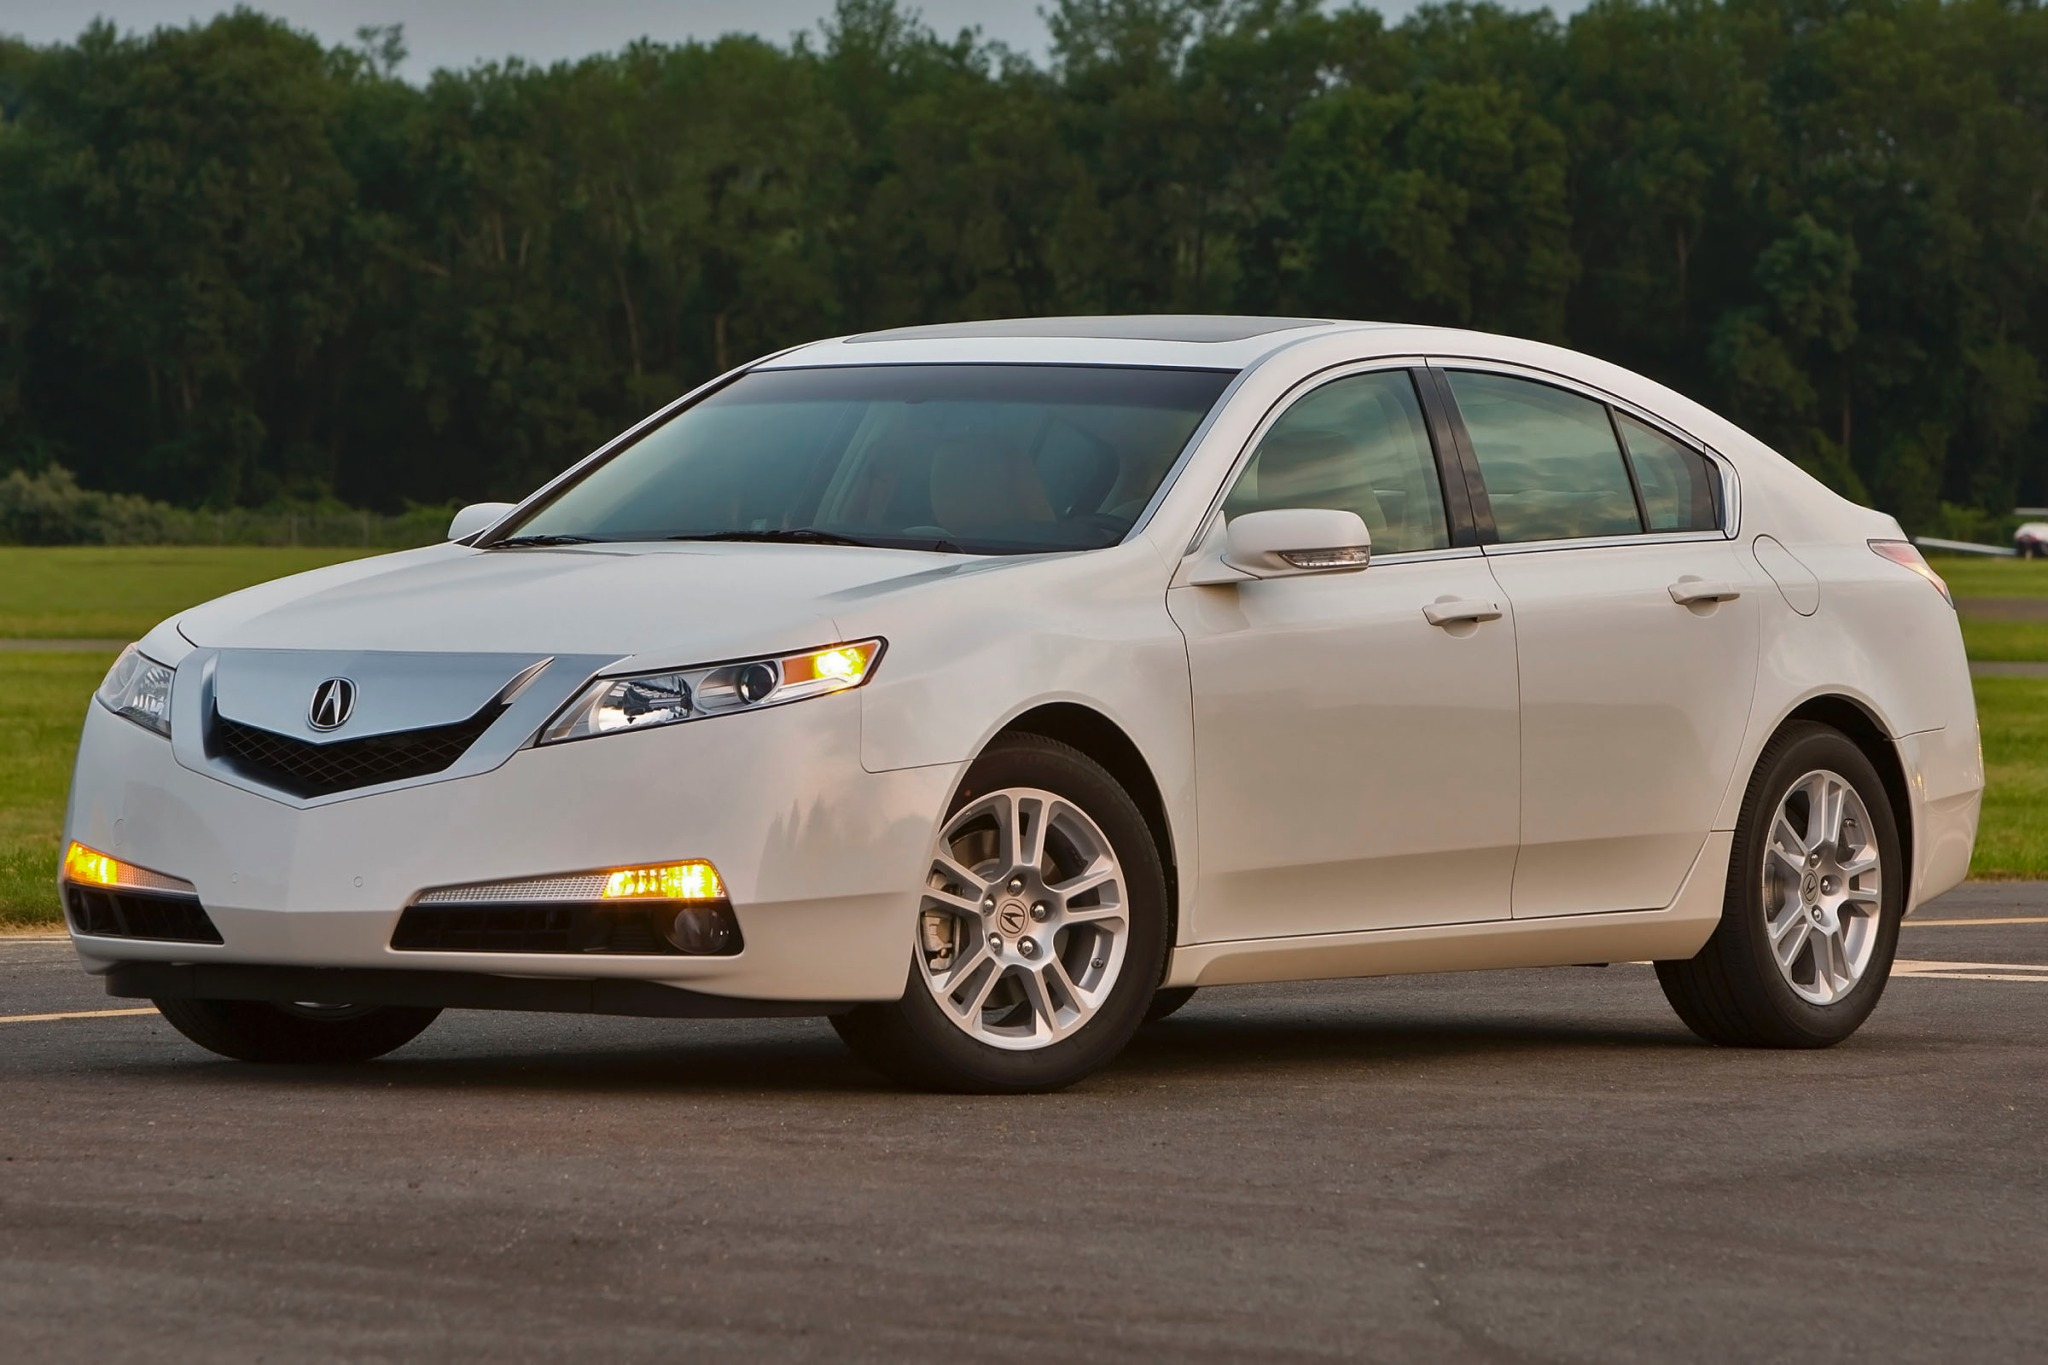 2011 Acura TL Sedan Engin exterior #8